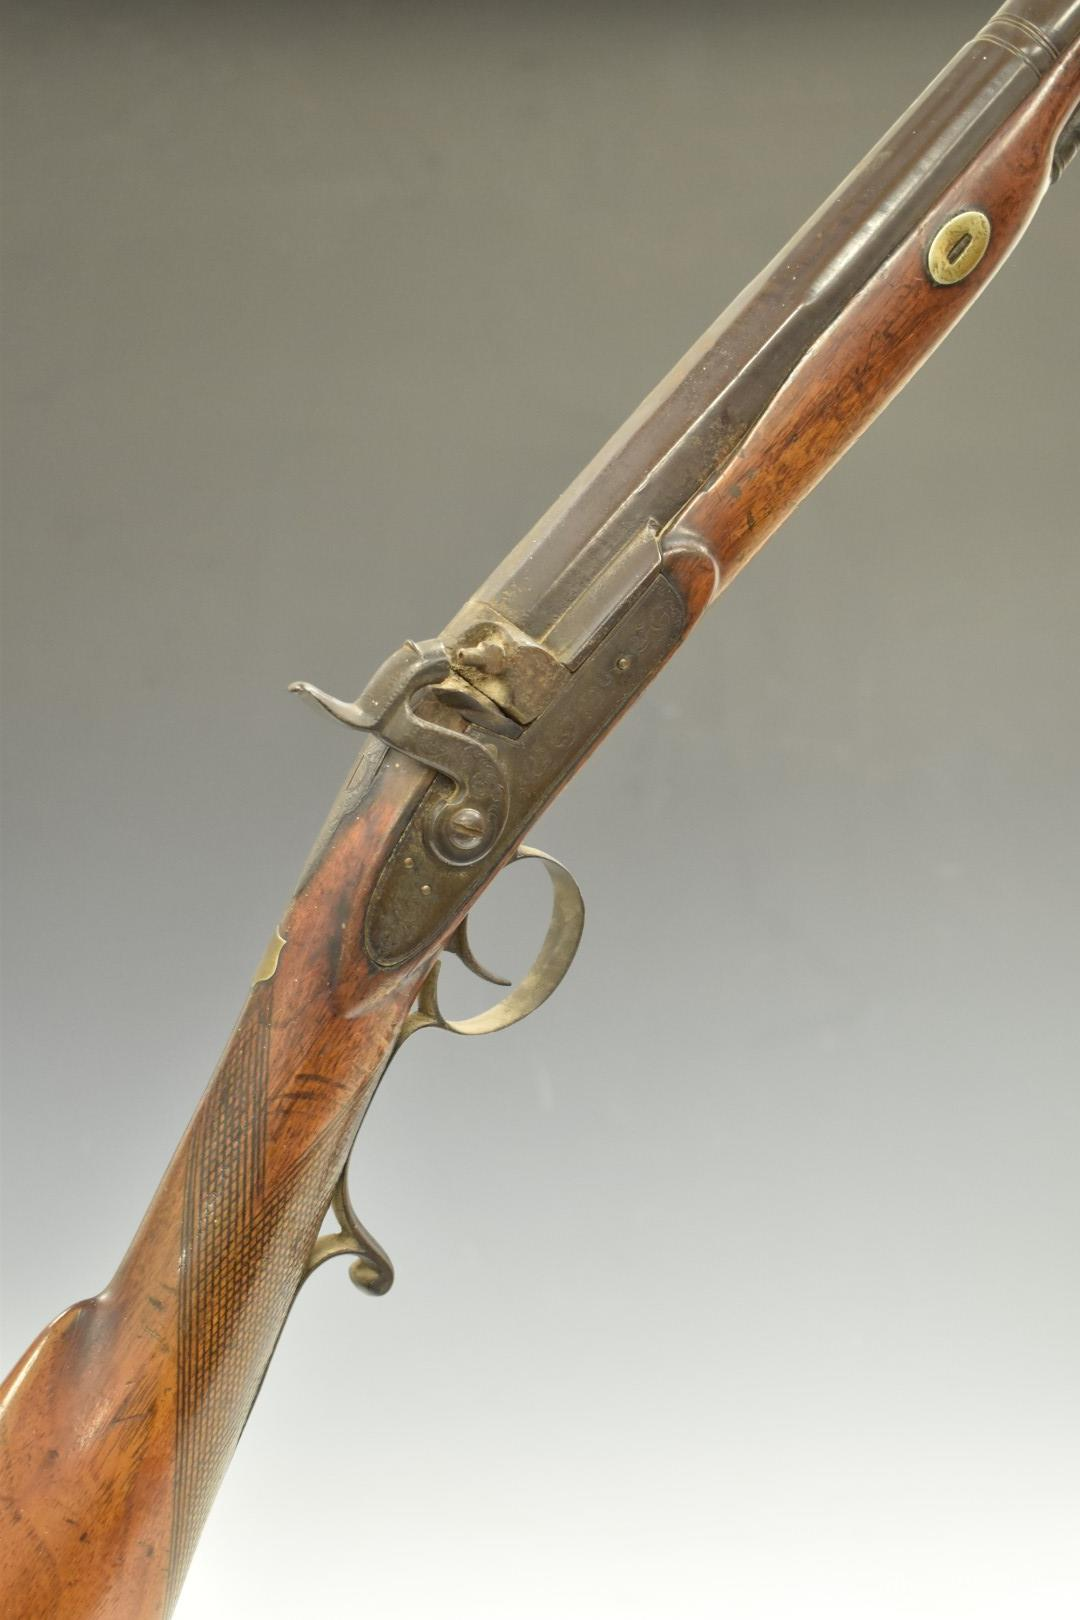 Unnamed percussion hammer action sporting gun with engraved lock, hammer top plate and scrolling